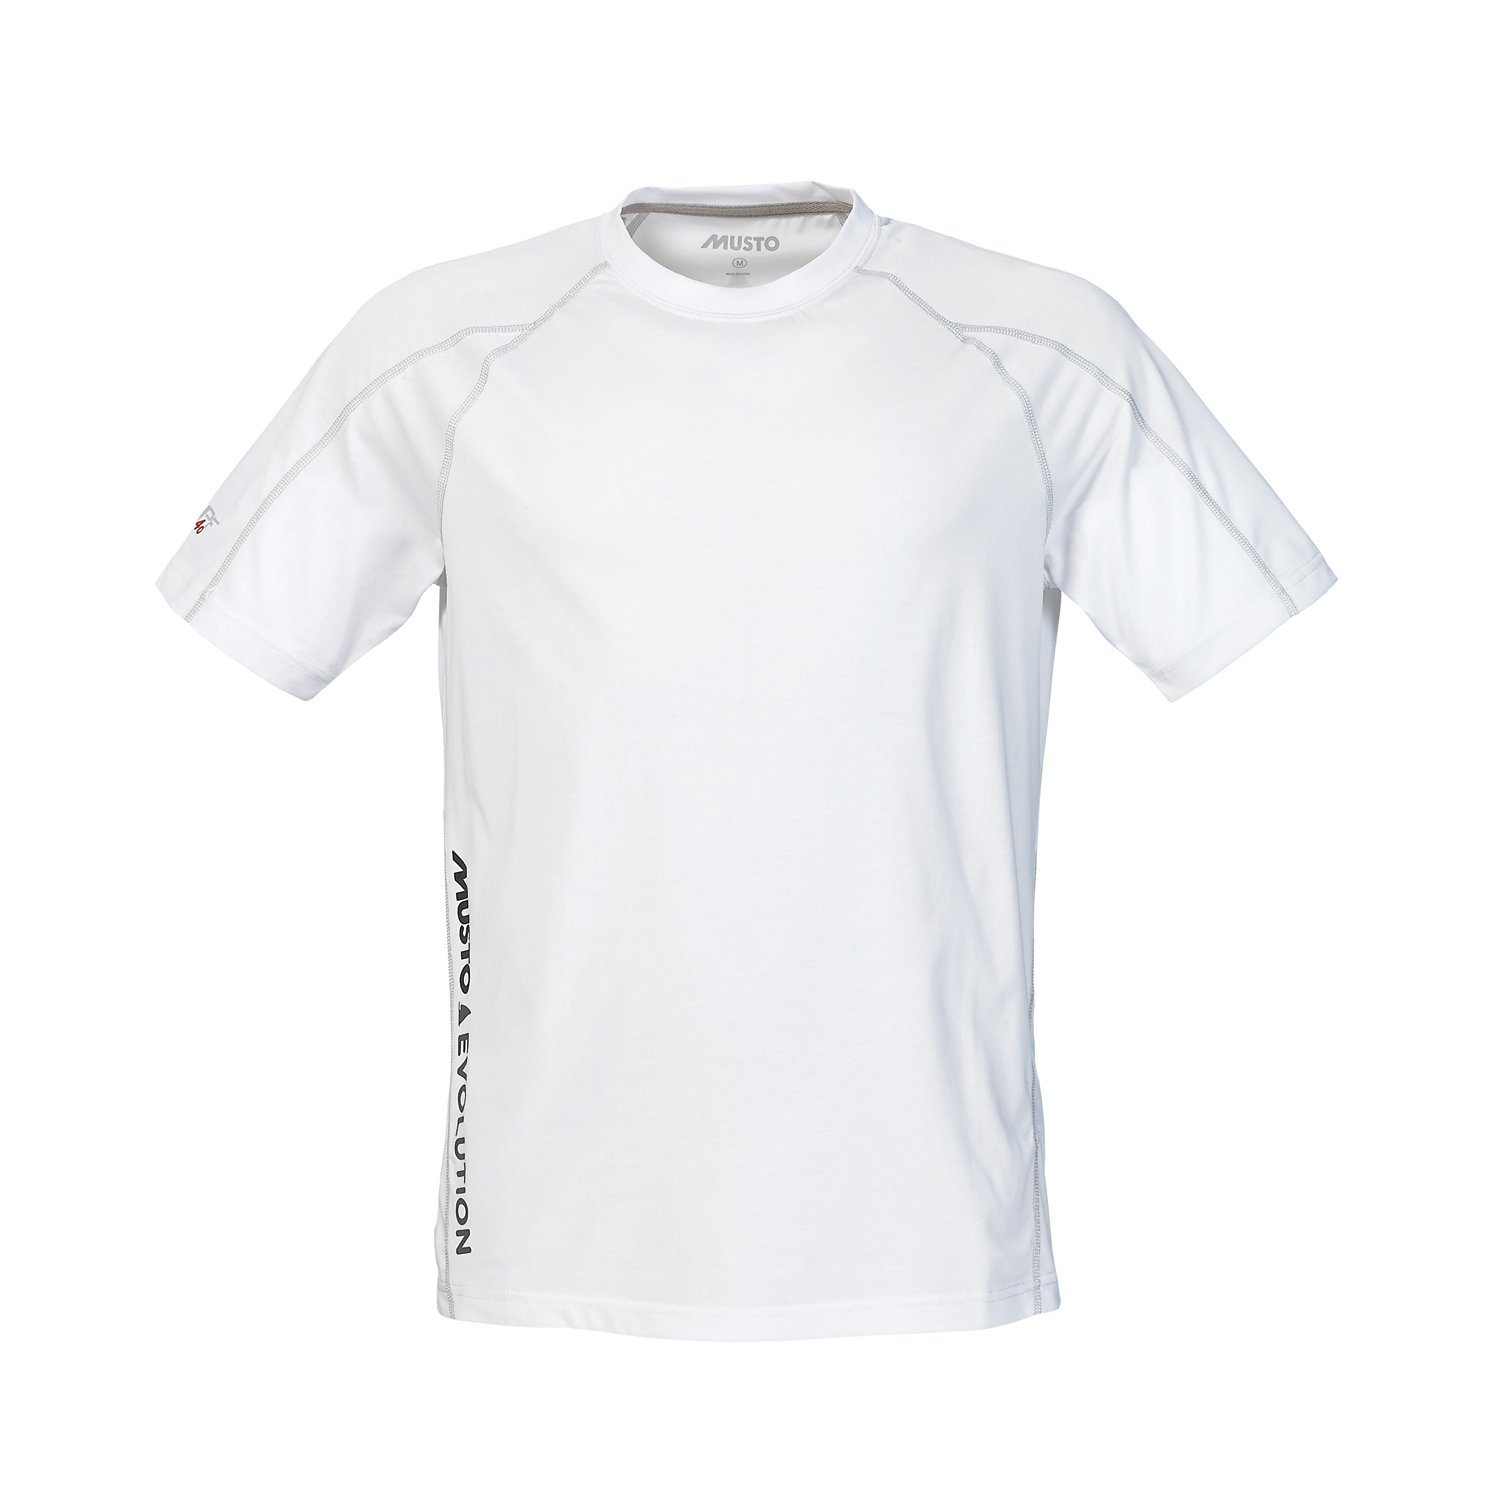 2016 Musto Evolution Logo Short Sleeve Tee in WHITE SE1361 Size - - Small: Amazon.es: Deportes y aire libre